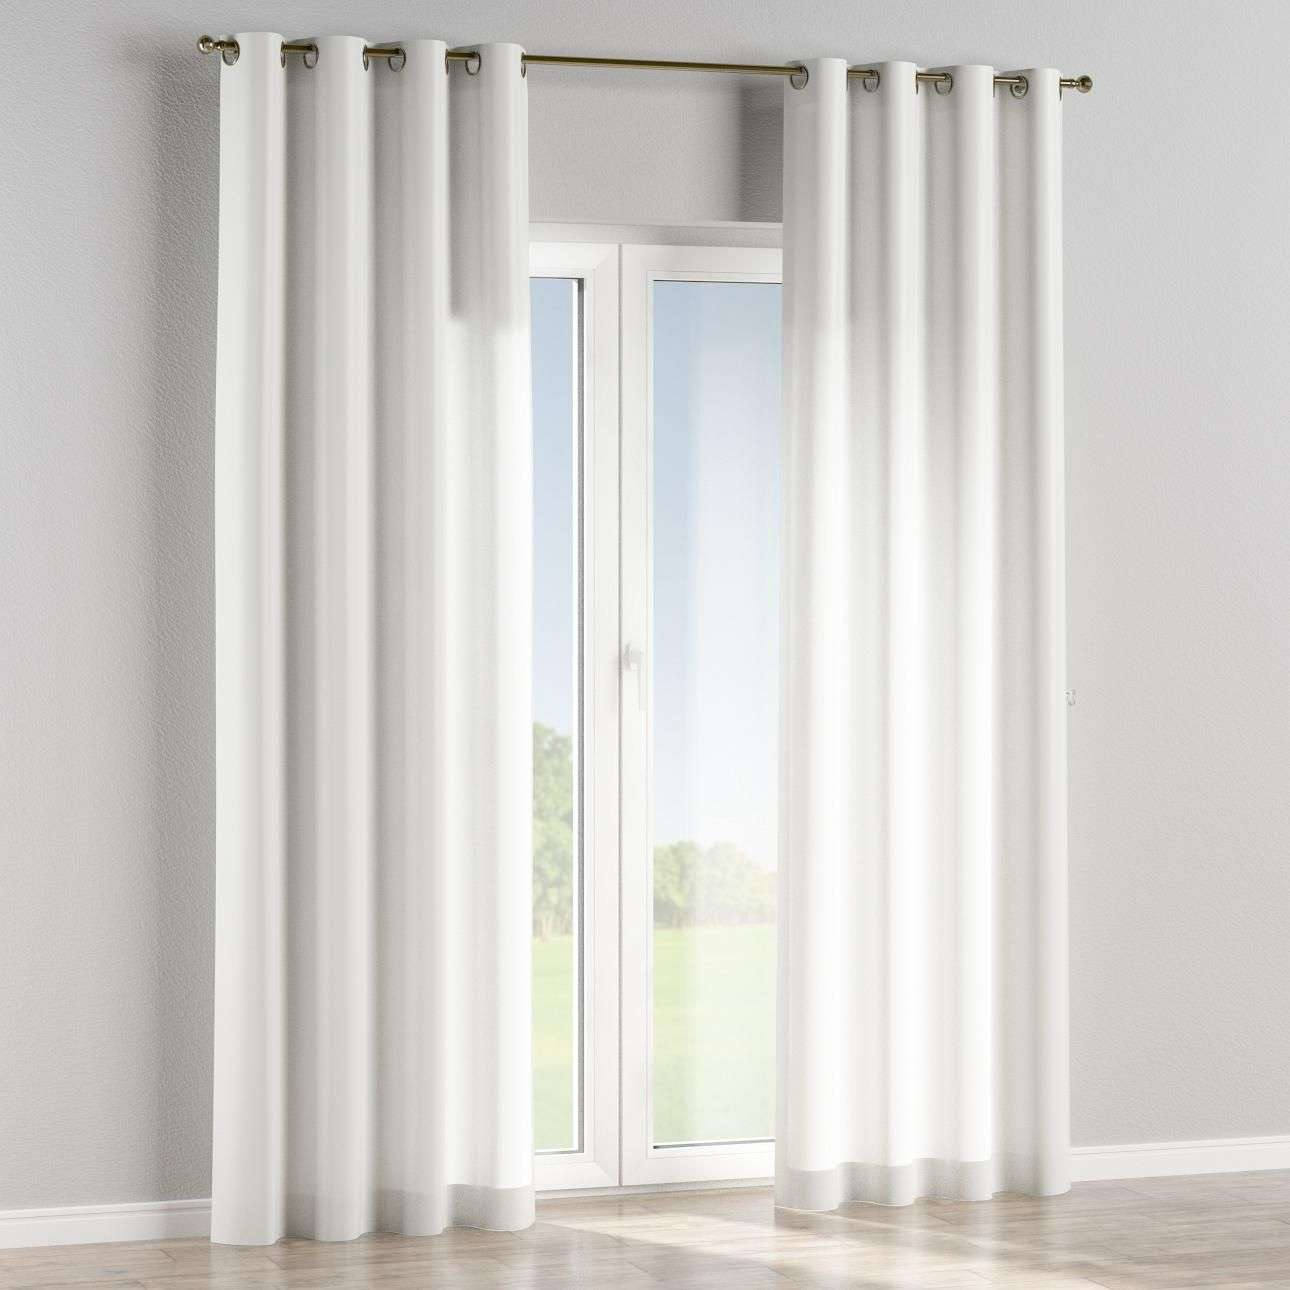 Eyelet lined curtains in collection Marina, fabric: 140-60